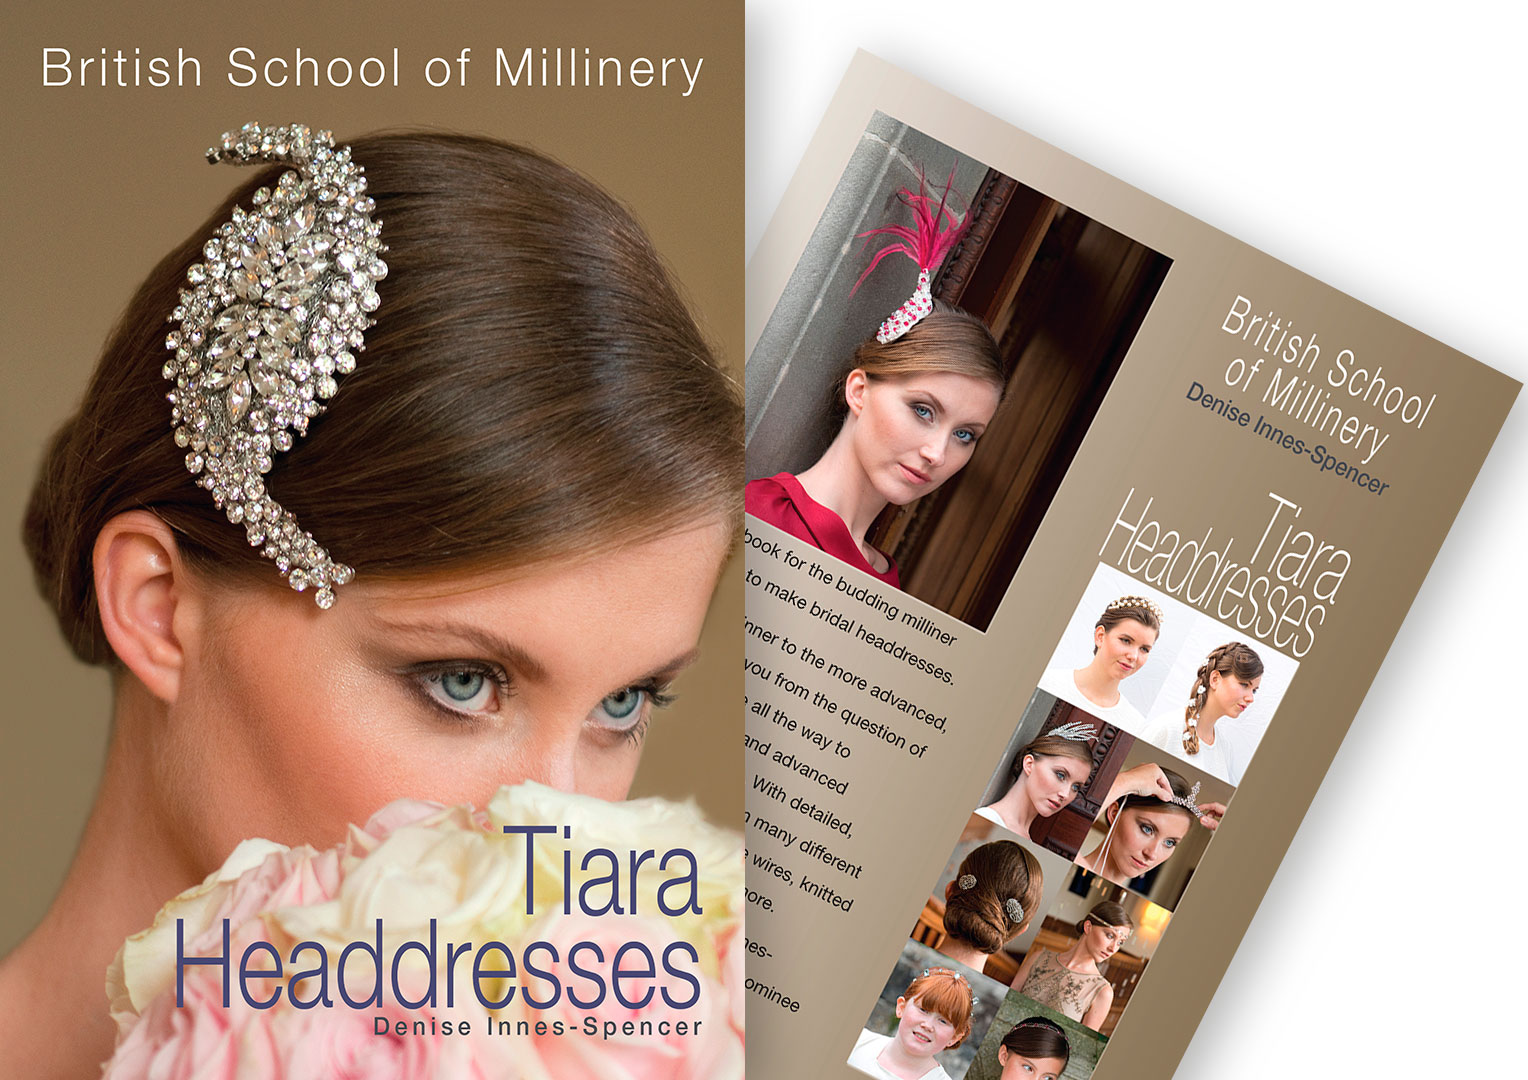 Tiara Headdresses